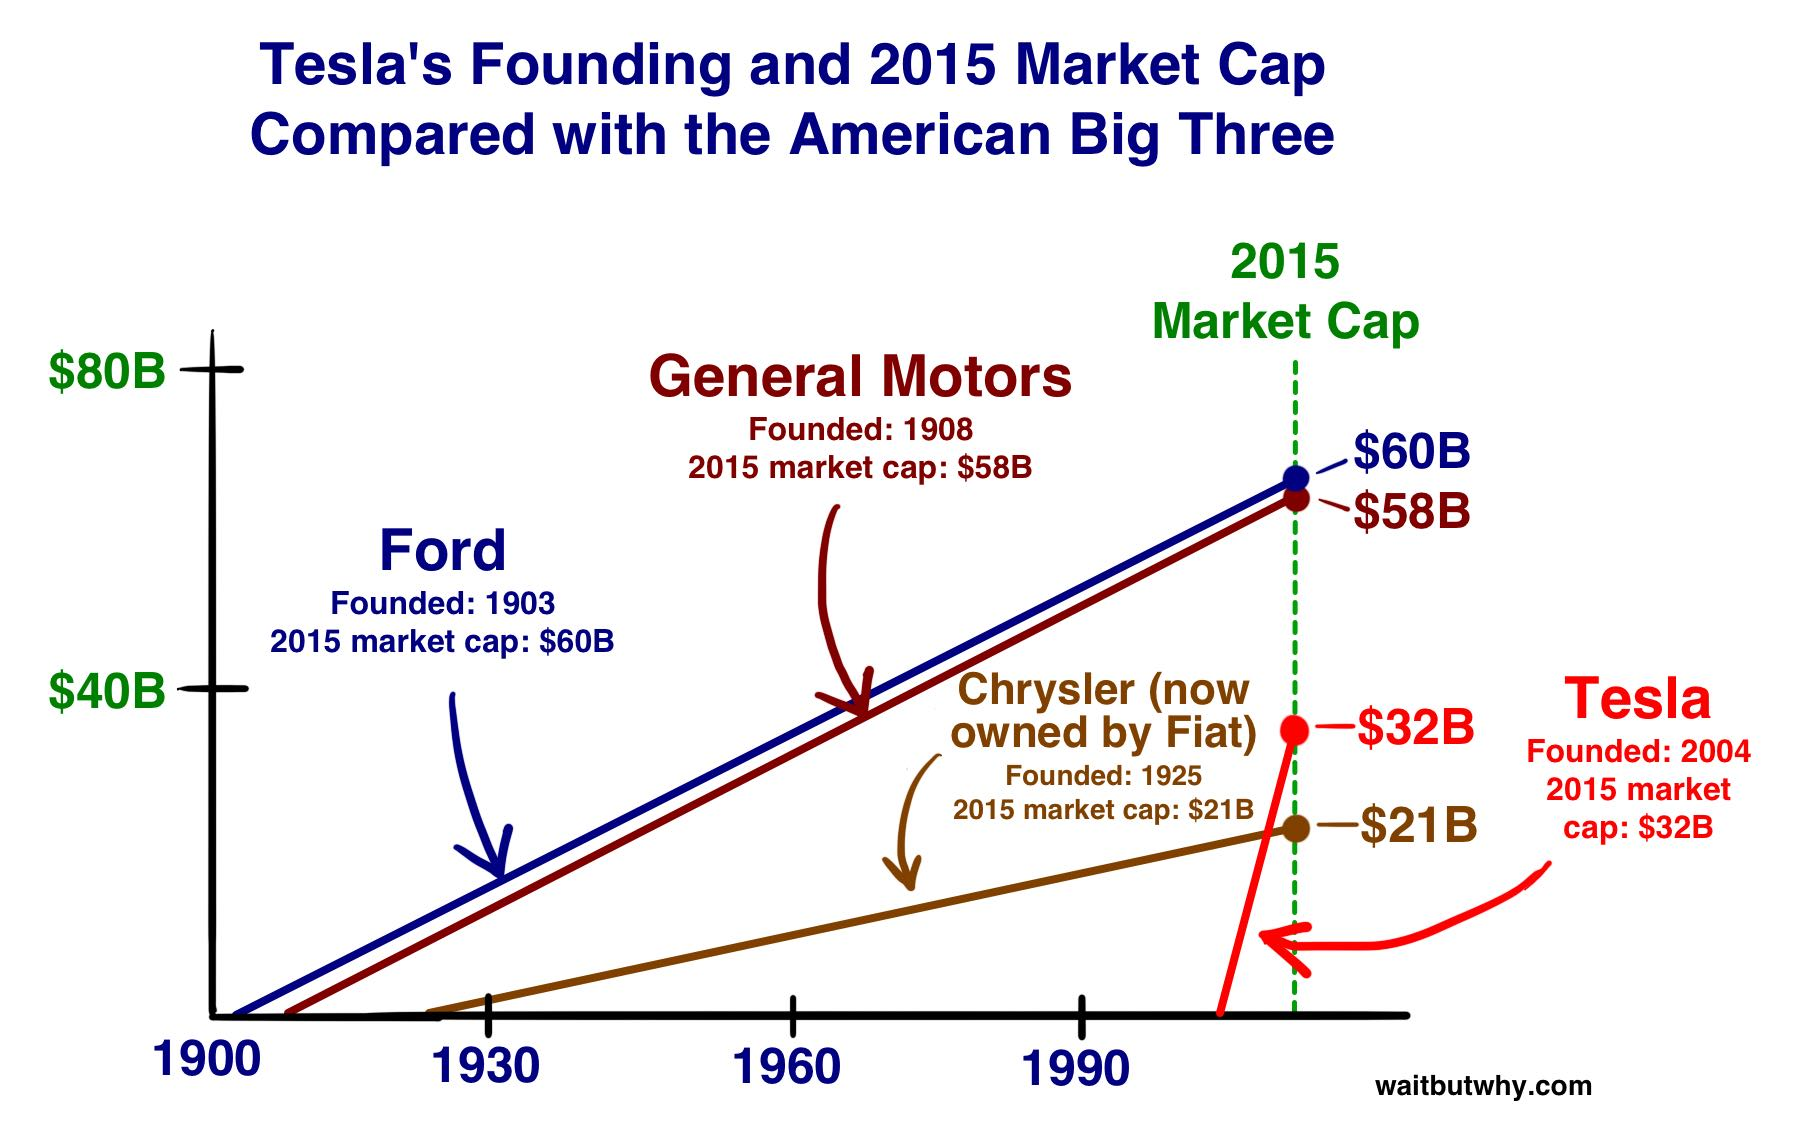 http://waitbutwhy.com/2015/06/how-tesla-will-change-your-life.html